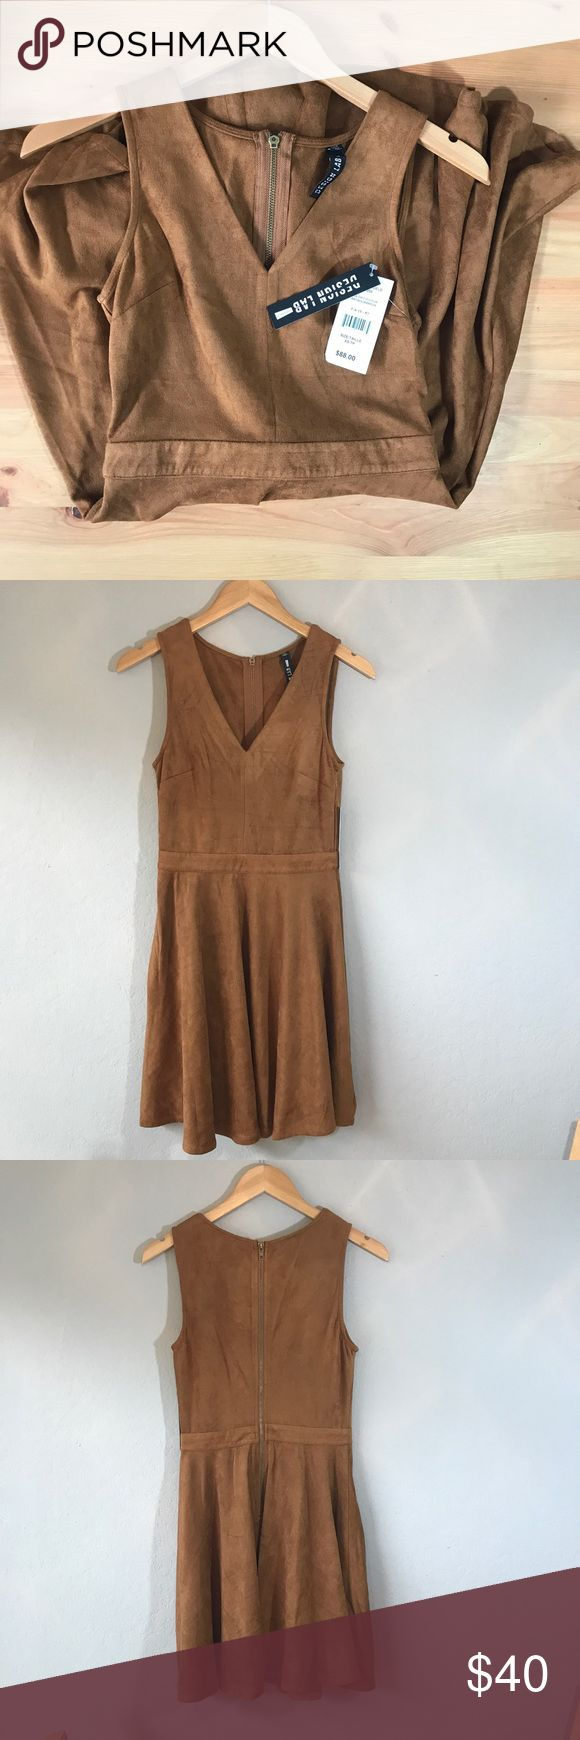 "Design Lab NWT Suede Swing Dress [xs] Design Lab by Lord and Taylor super soft and bouncy suede swing/skater dress with v plunge neckline. Camel brown with zipper down the back. Great color for fall transition! 90% polyester 10% spandex.   Approximate measurements  Bust 15"" Waist 12-3/4"" Length 33.5""  All of my items ship out within 1 day! (Item #010) Lord & Taylor Dresses"